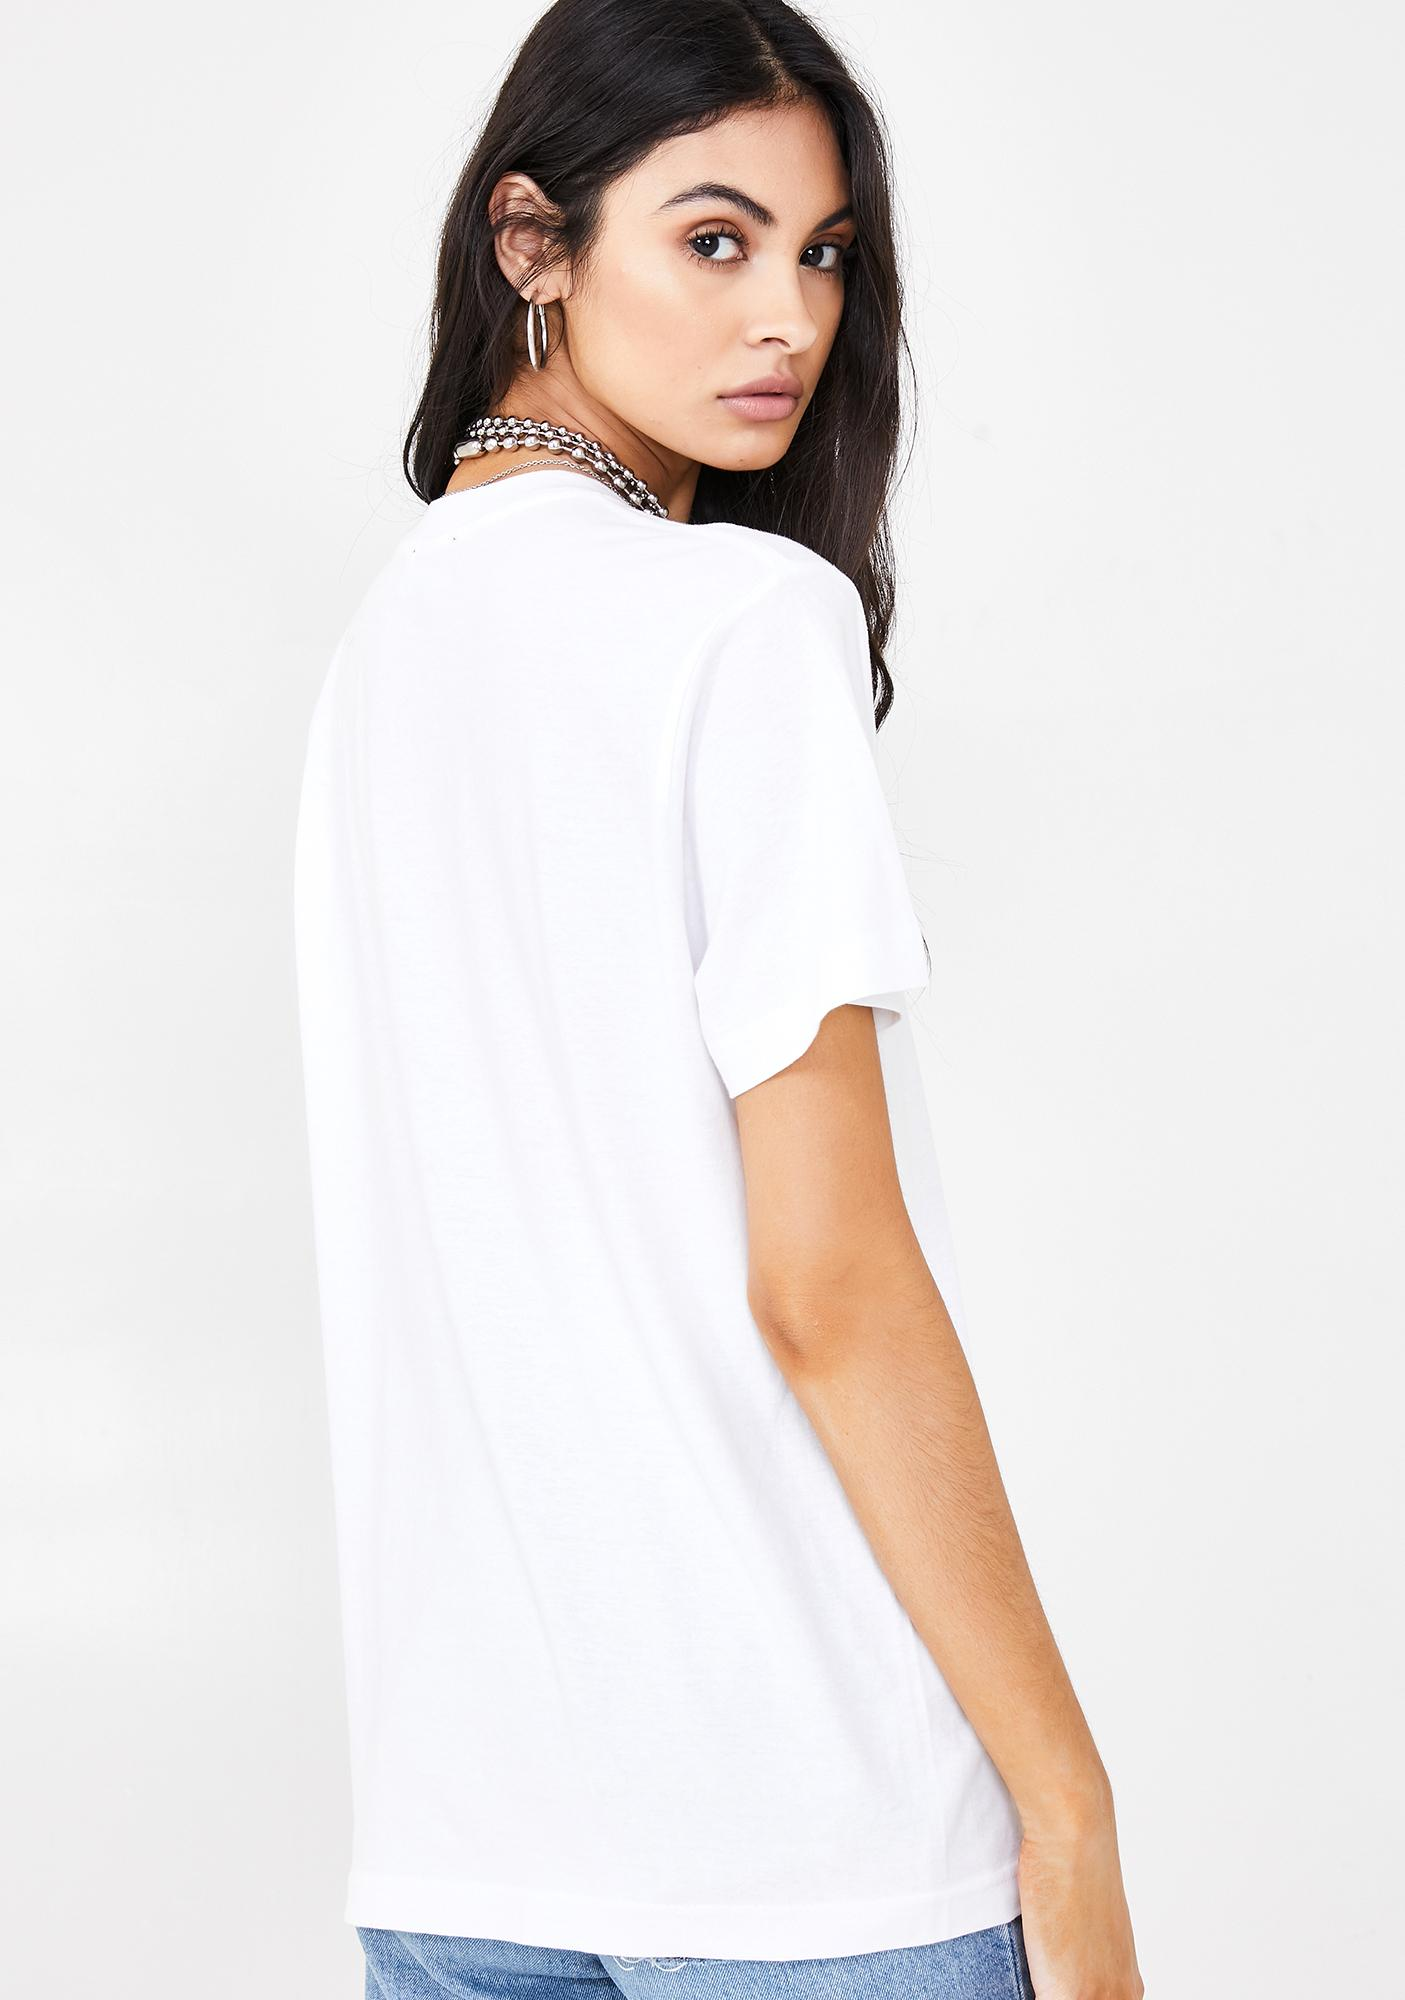 NEW GIRL ORDER Paws Not Straws Graphic Tee